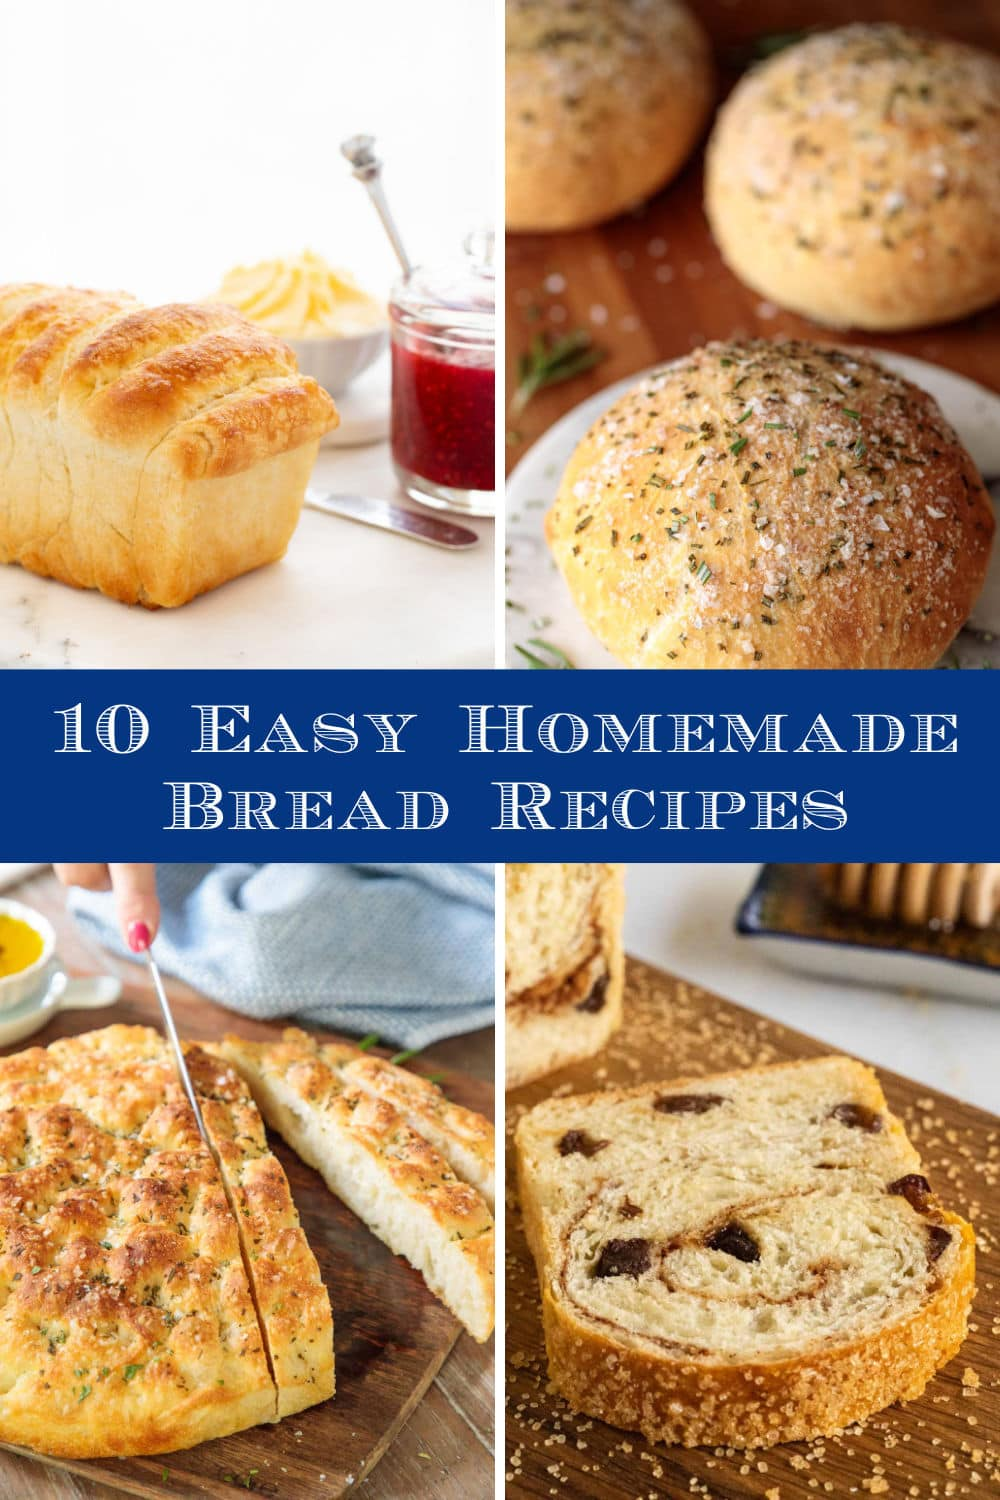 Ten Easy Bread Recipes that will Make You Look Like a Kitchen Rock Star!